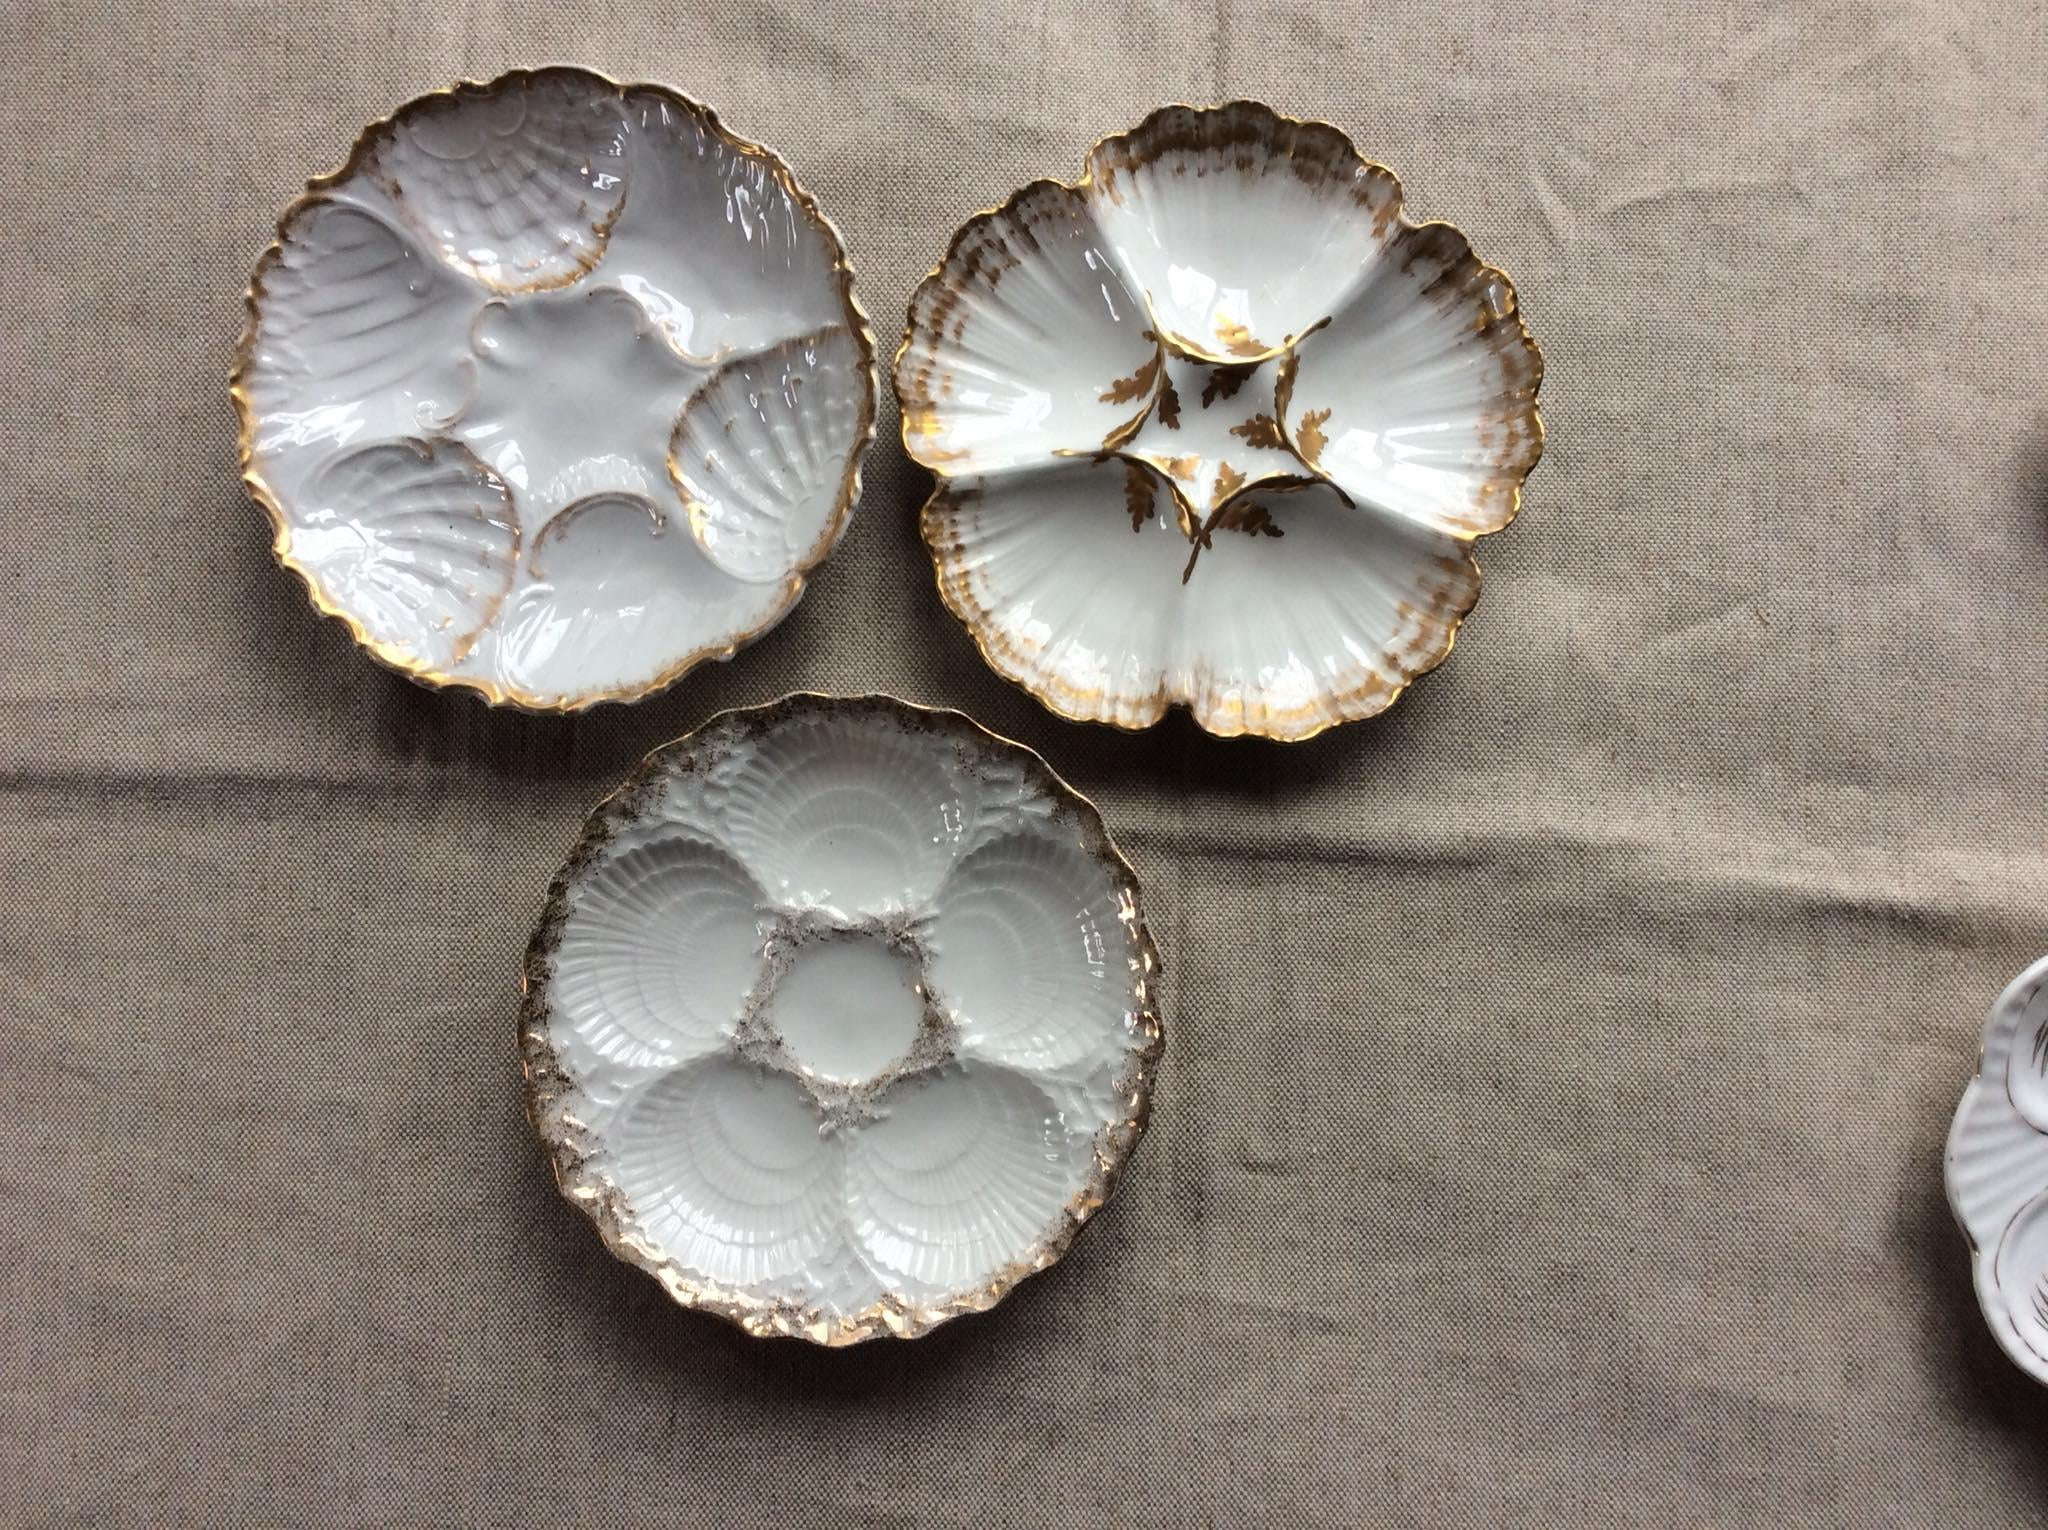 Collection of Antique French Oyster Plates - Set of 5 - Image 4 of 11  sc 1 st  Chairish & Collection of Antique French Oyster Plates - Set of 5 | Chairish